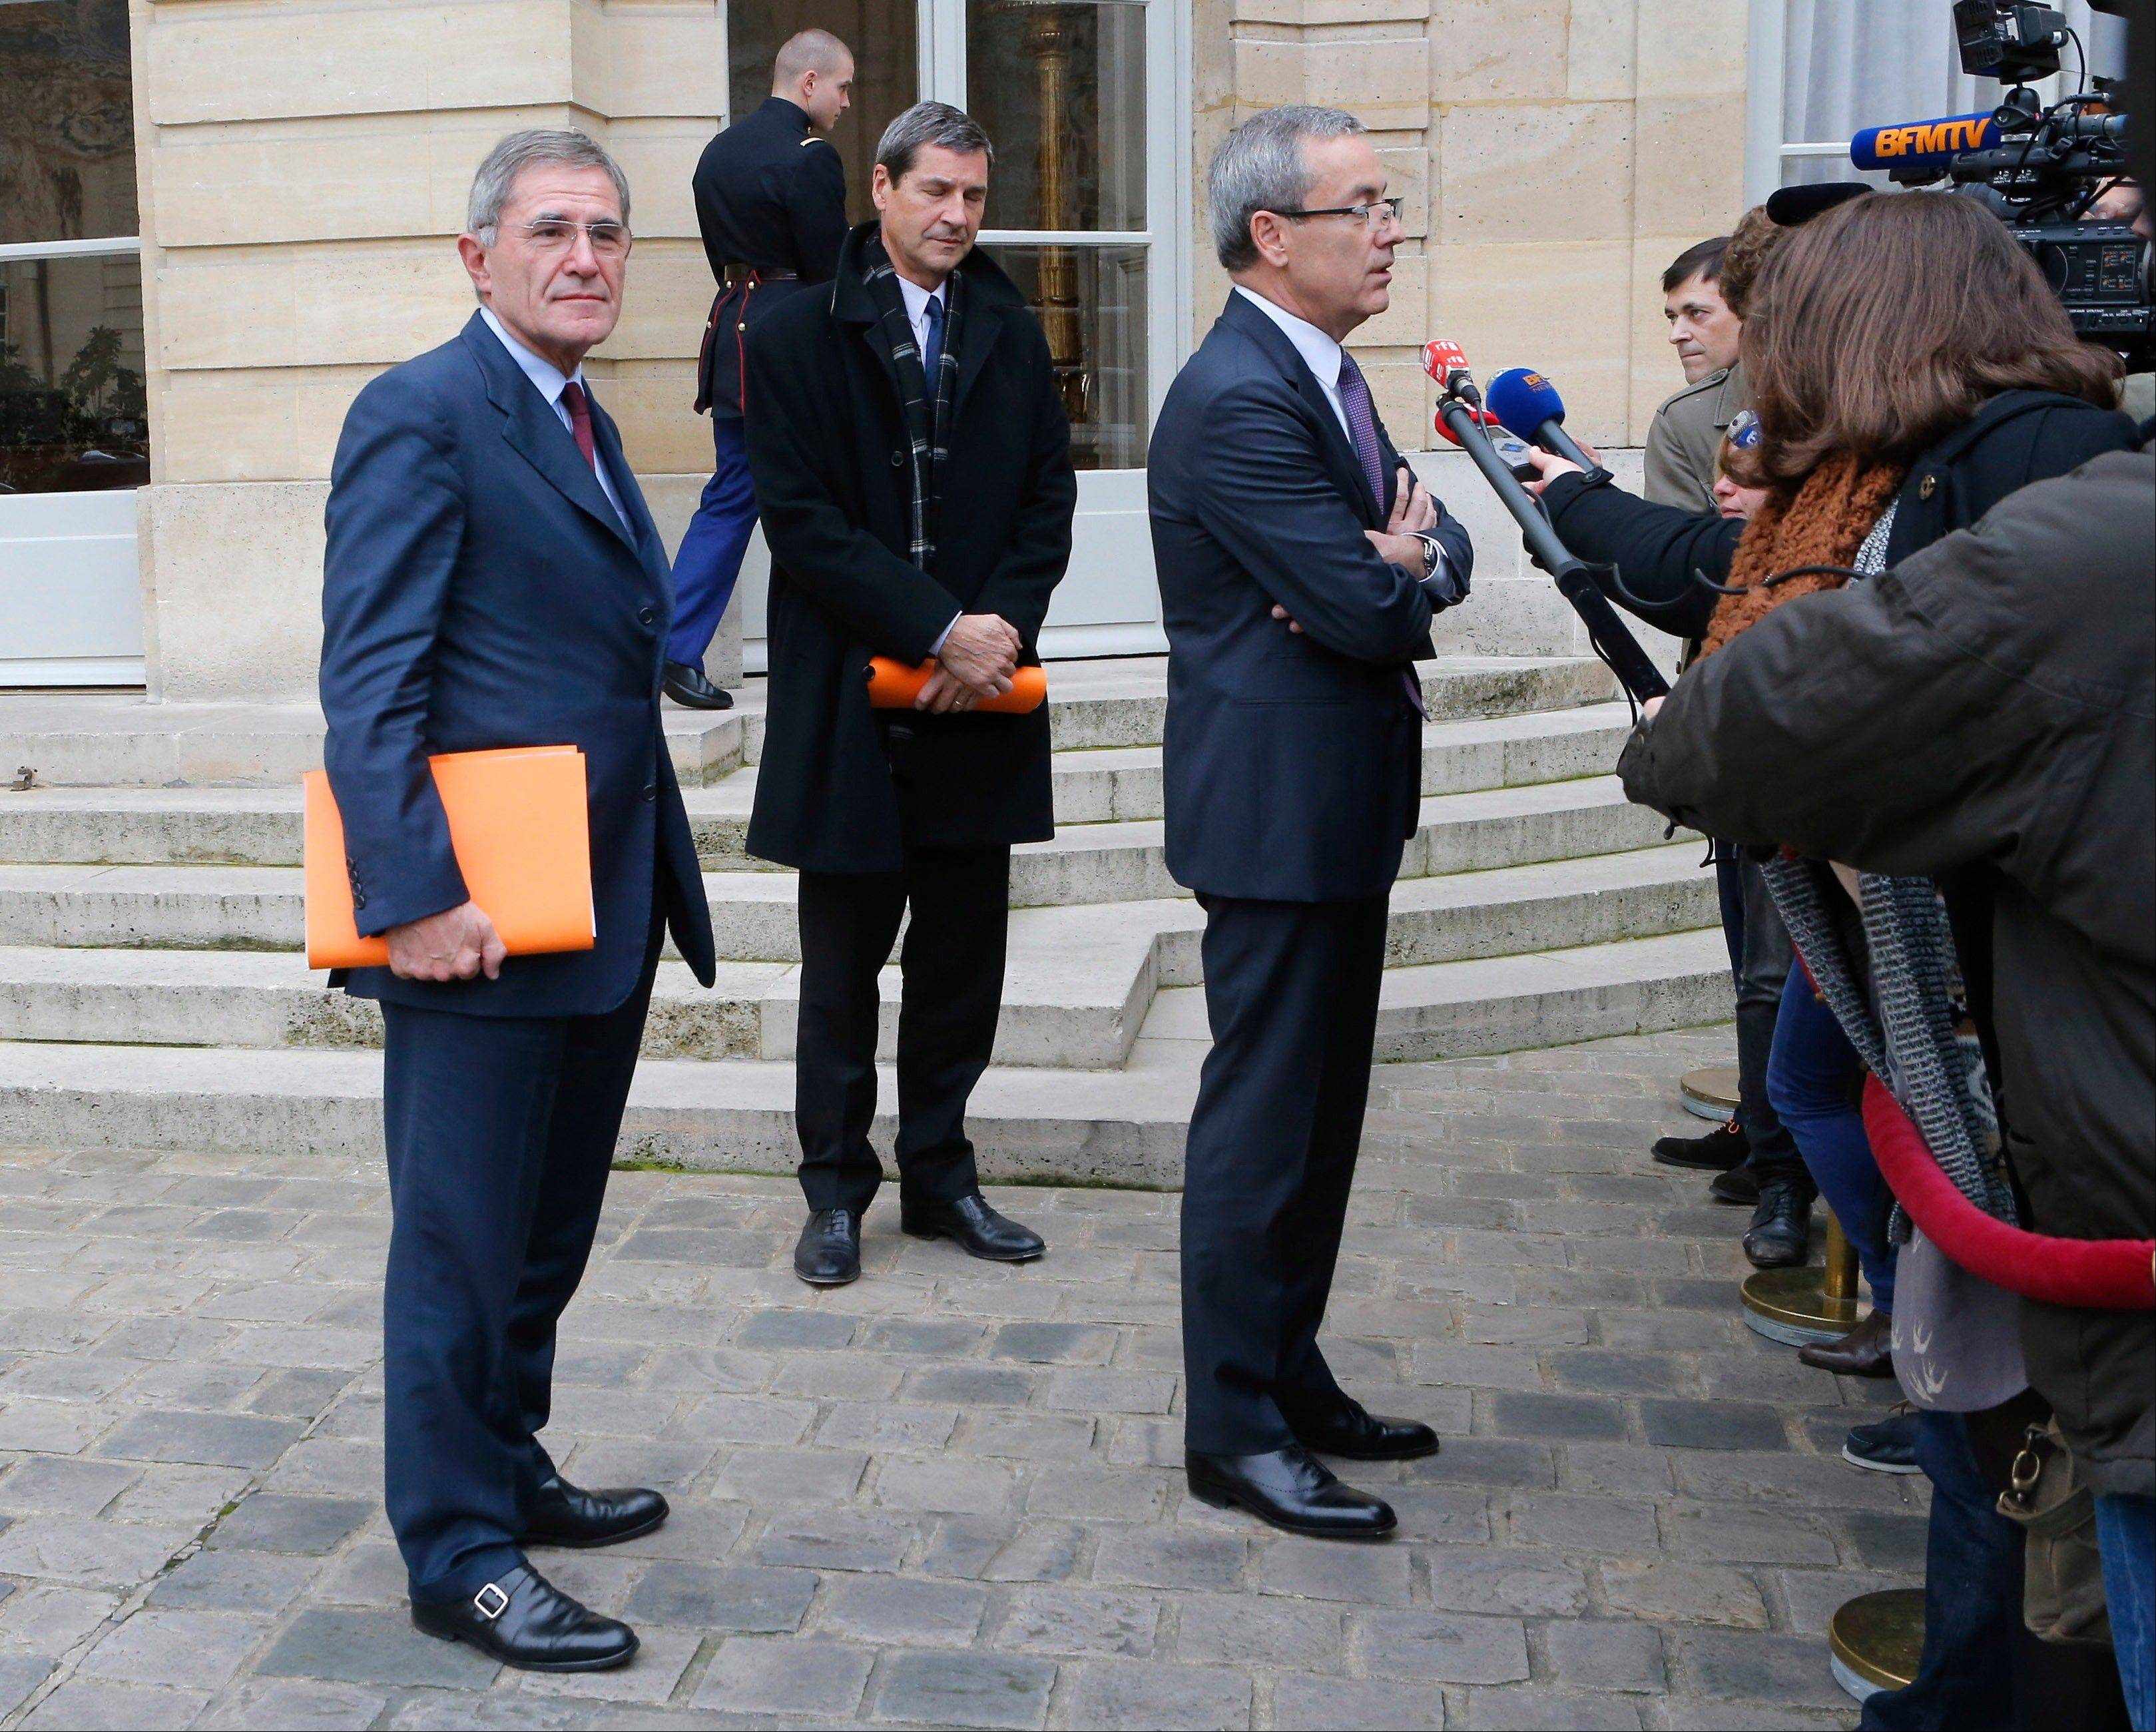 Chief Executive Officer of Solvay Jean Pierre Clamadieu, right, GDF Suez Chief Executive, Gerard Mestrallet, left, and Chief Executive of Imerys Gilles Michel, react with media after their meeting with French Prime Minister Jean Marc Ayrault, unseen, in the Matignon Palace in Paris Monday. The French government is hoping that gradual change is the way to go, and that a series of private meetings and cautious public statements in recent days will mollify both fearful workers and employers who say it's no longer worth the cost to hire. That failed to keep unemployment from rising, or some of France's biggest corporations from announcing thousands more layoffs, including carmaker Peugeot Citroen, Air France and retail giant Carrefour.